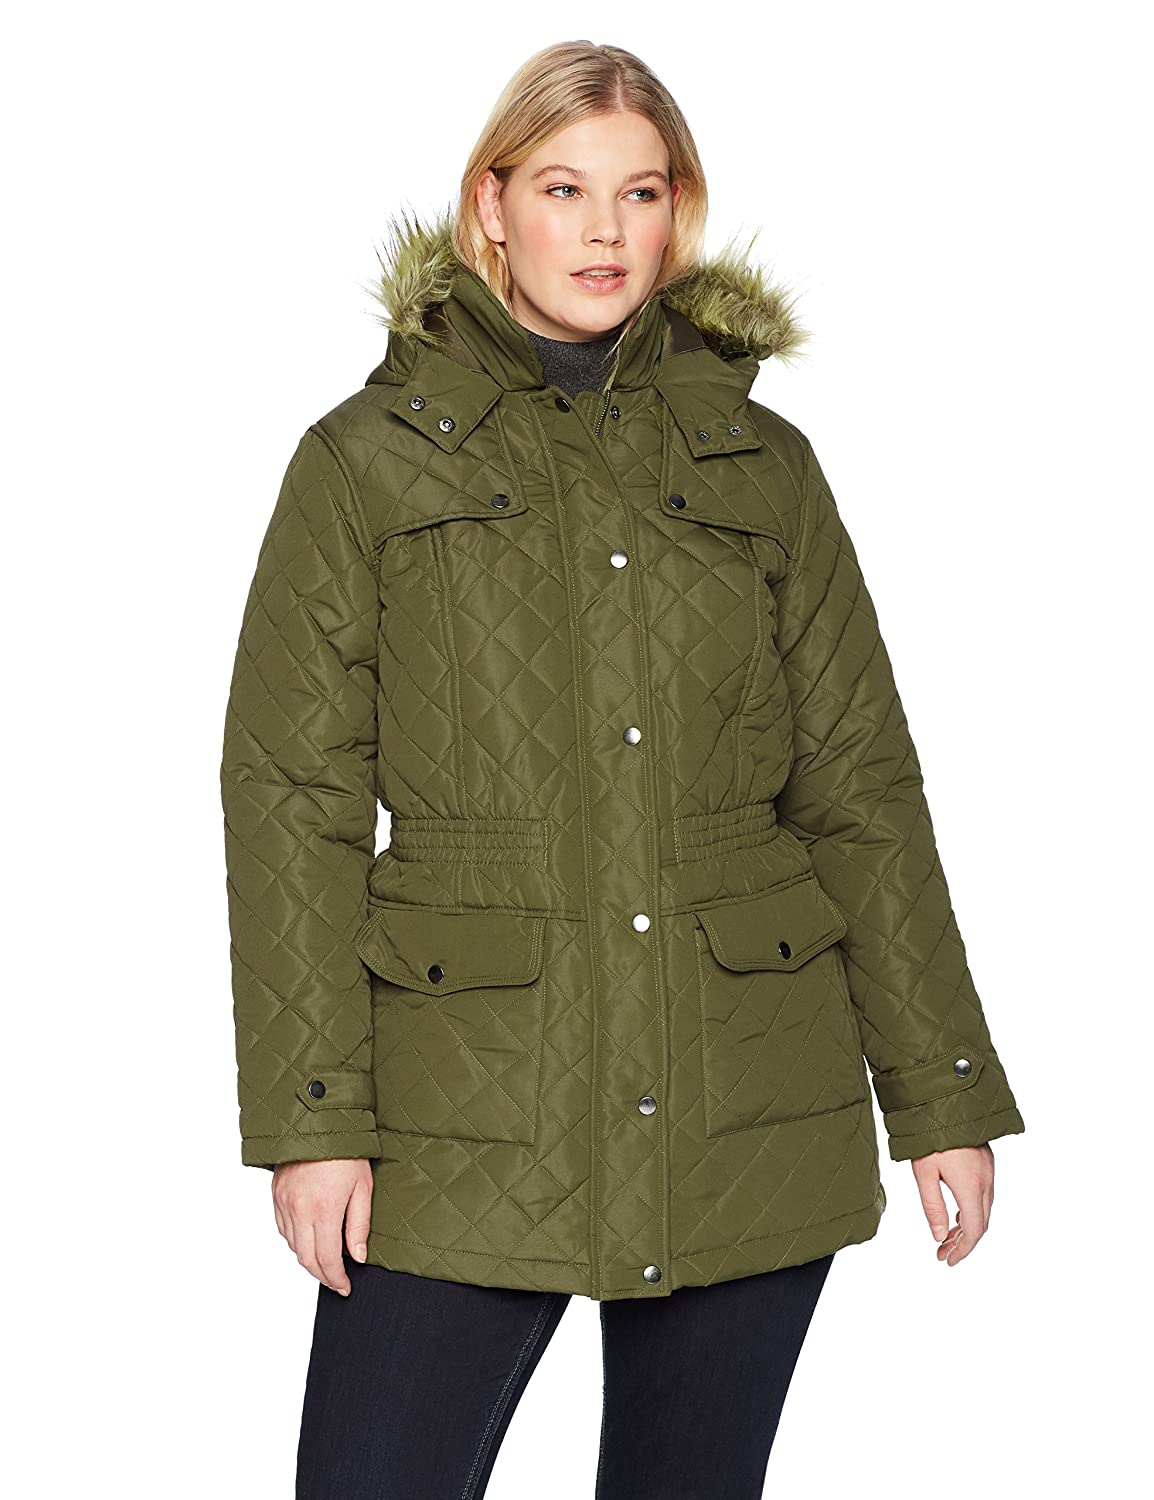 8655c7d09cd Amazon.com  The Plus Project Women s Plus Size Quilted Long Coat with  Pockets  Clothing